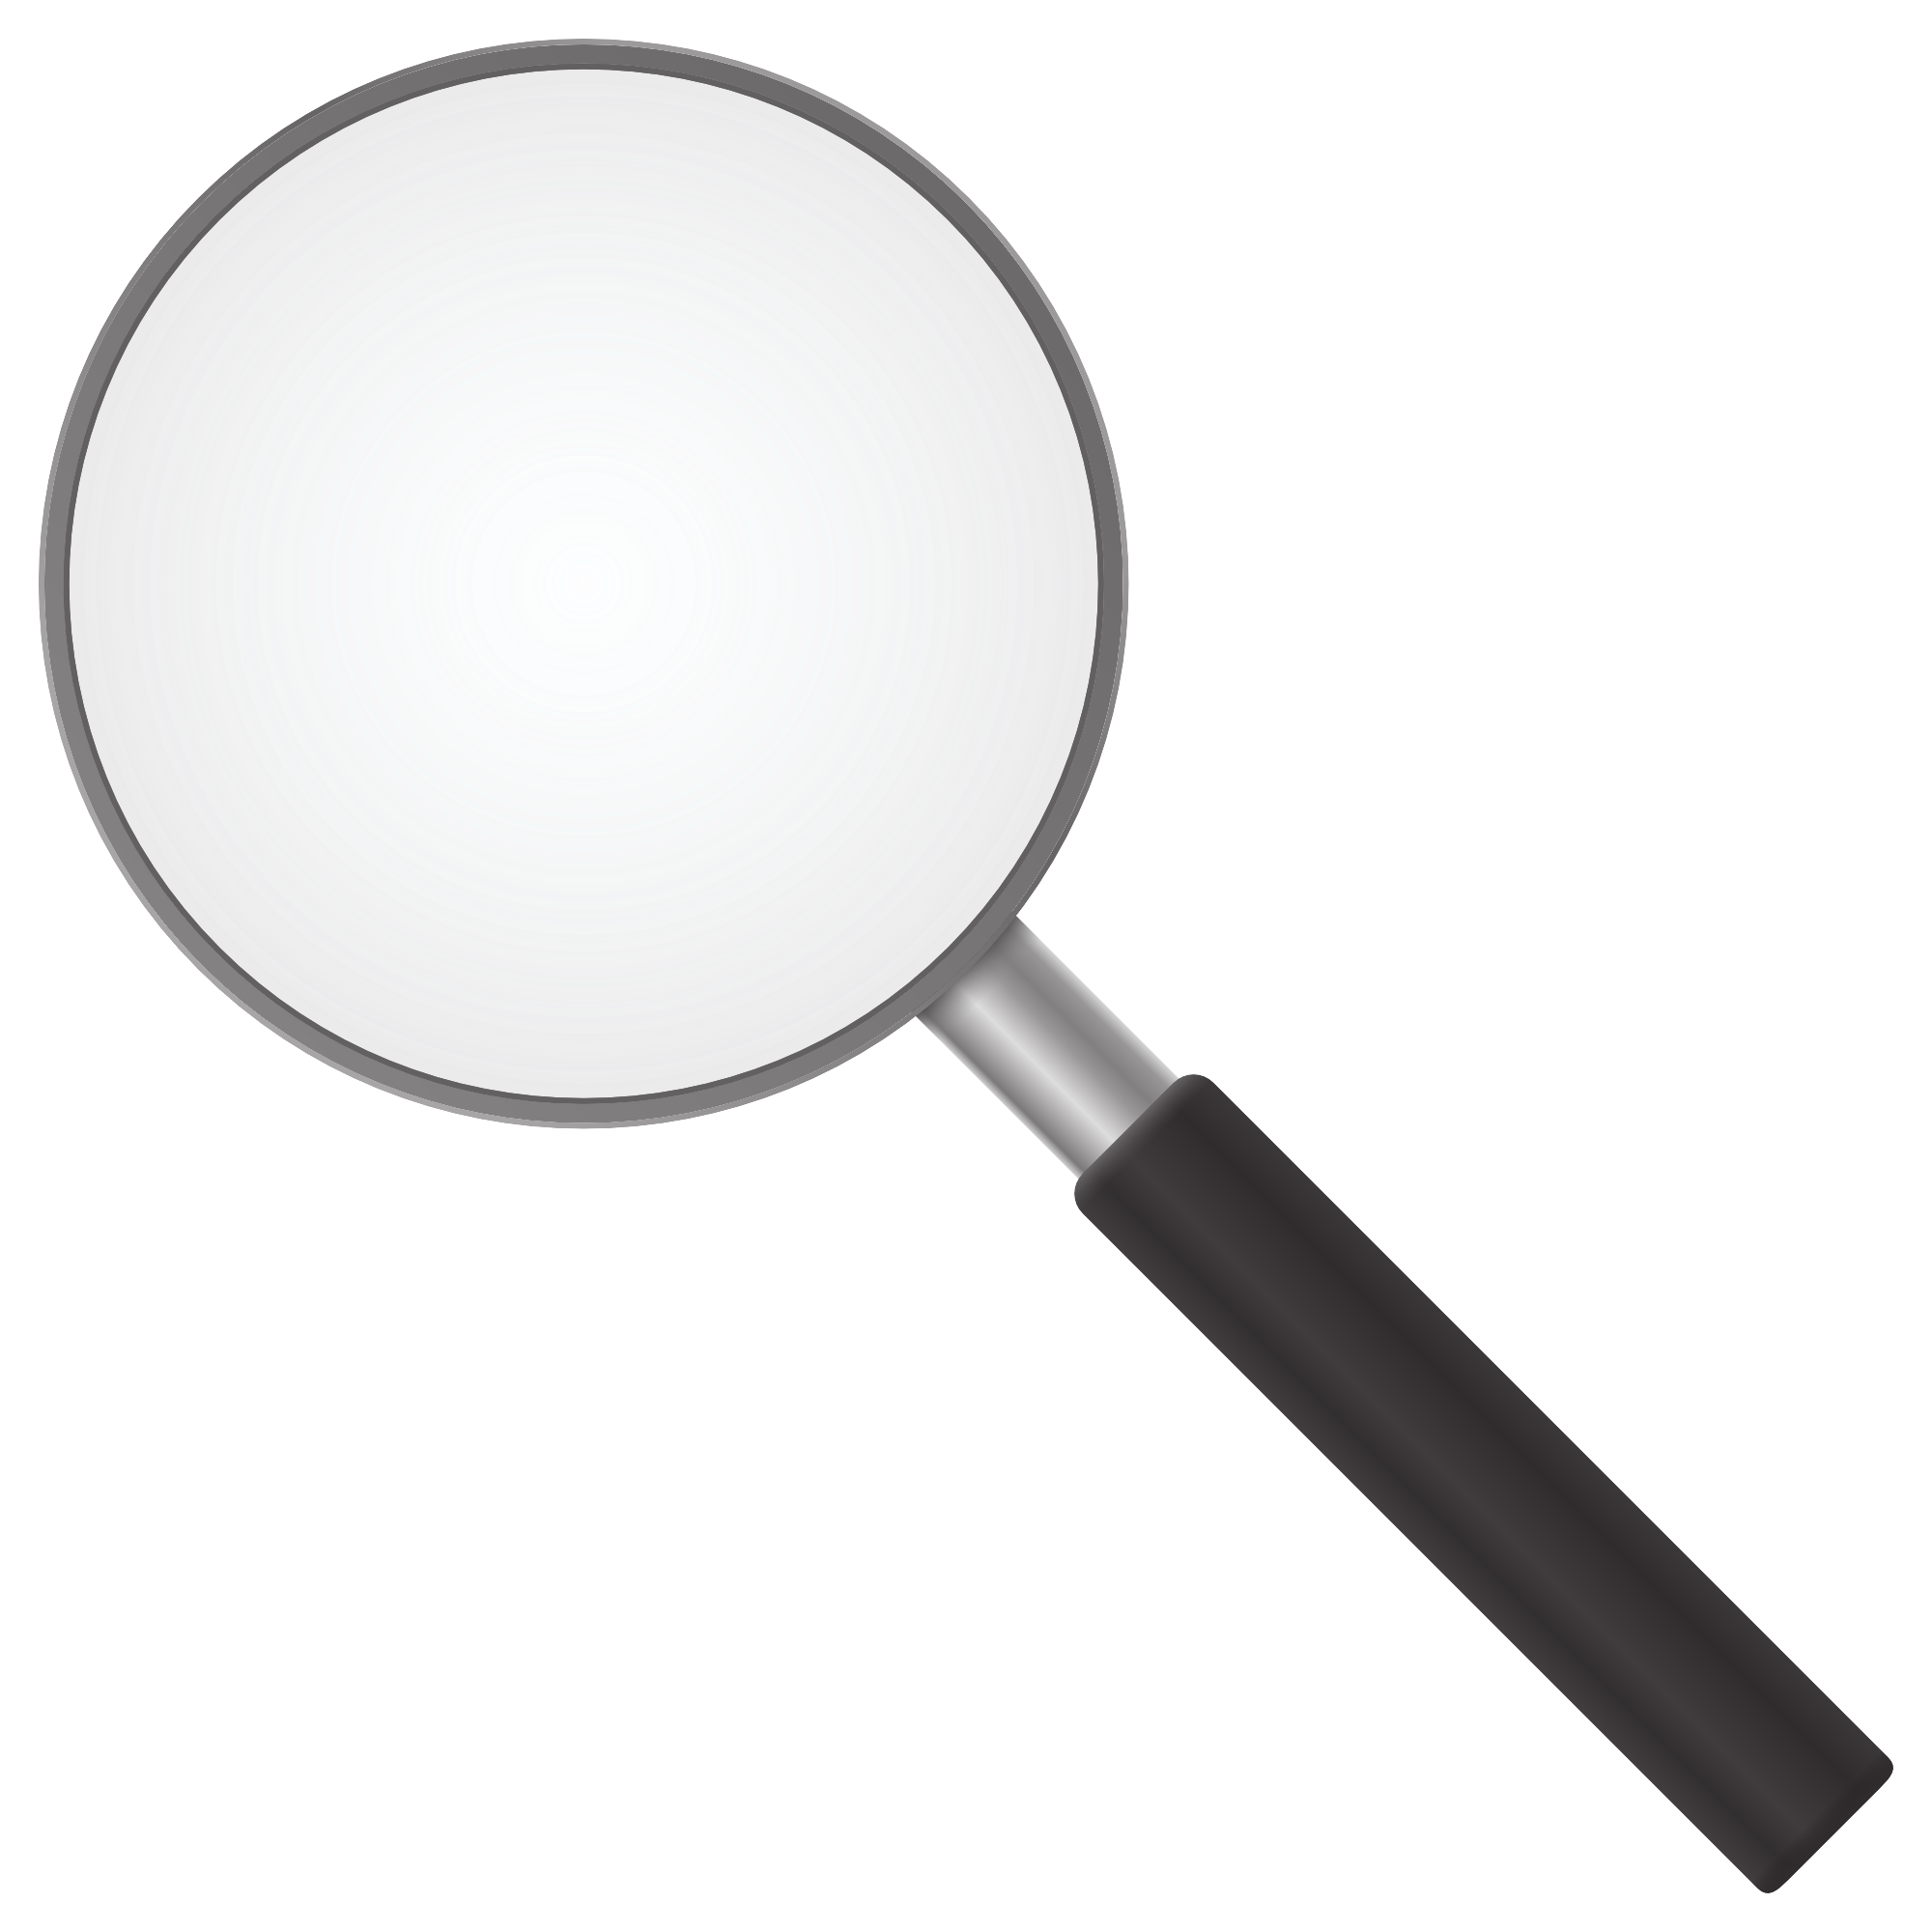 Loupe PNG - 24658